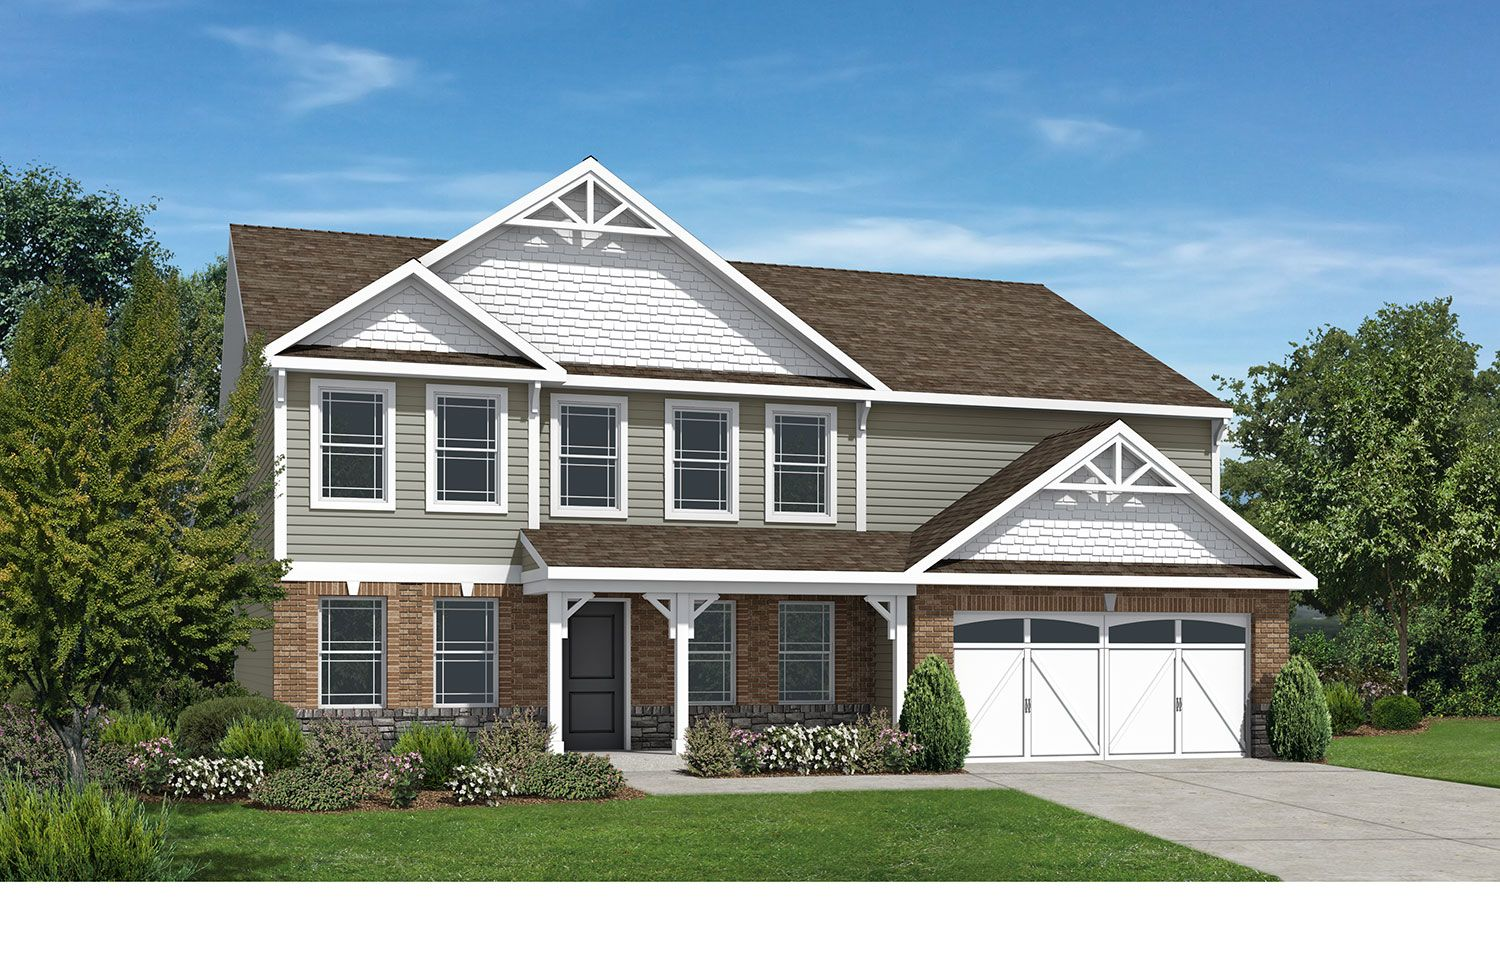 Westport homes of indianapolis stone crossing denali for Houses for sale westport